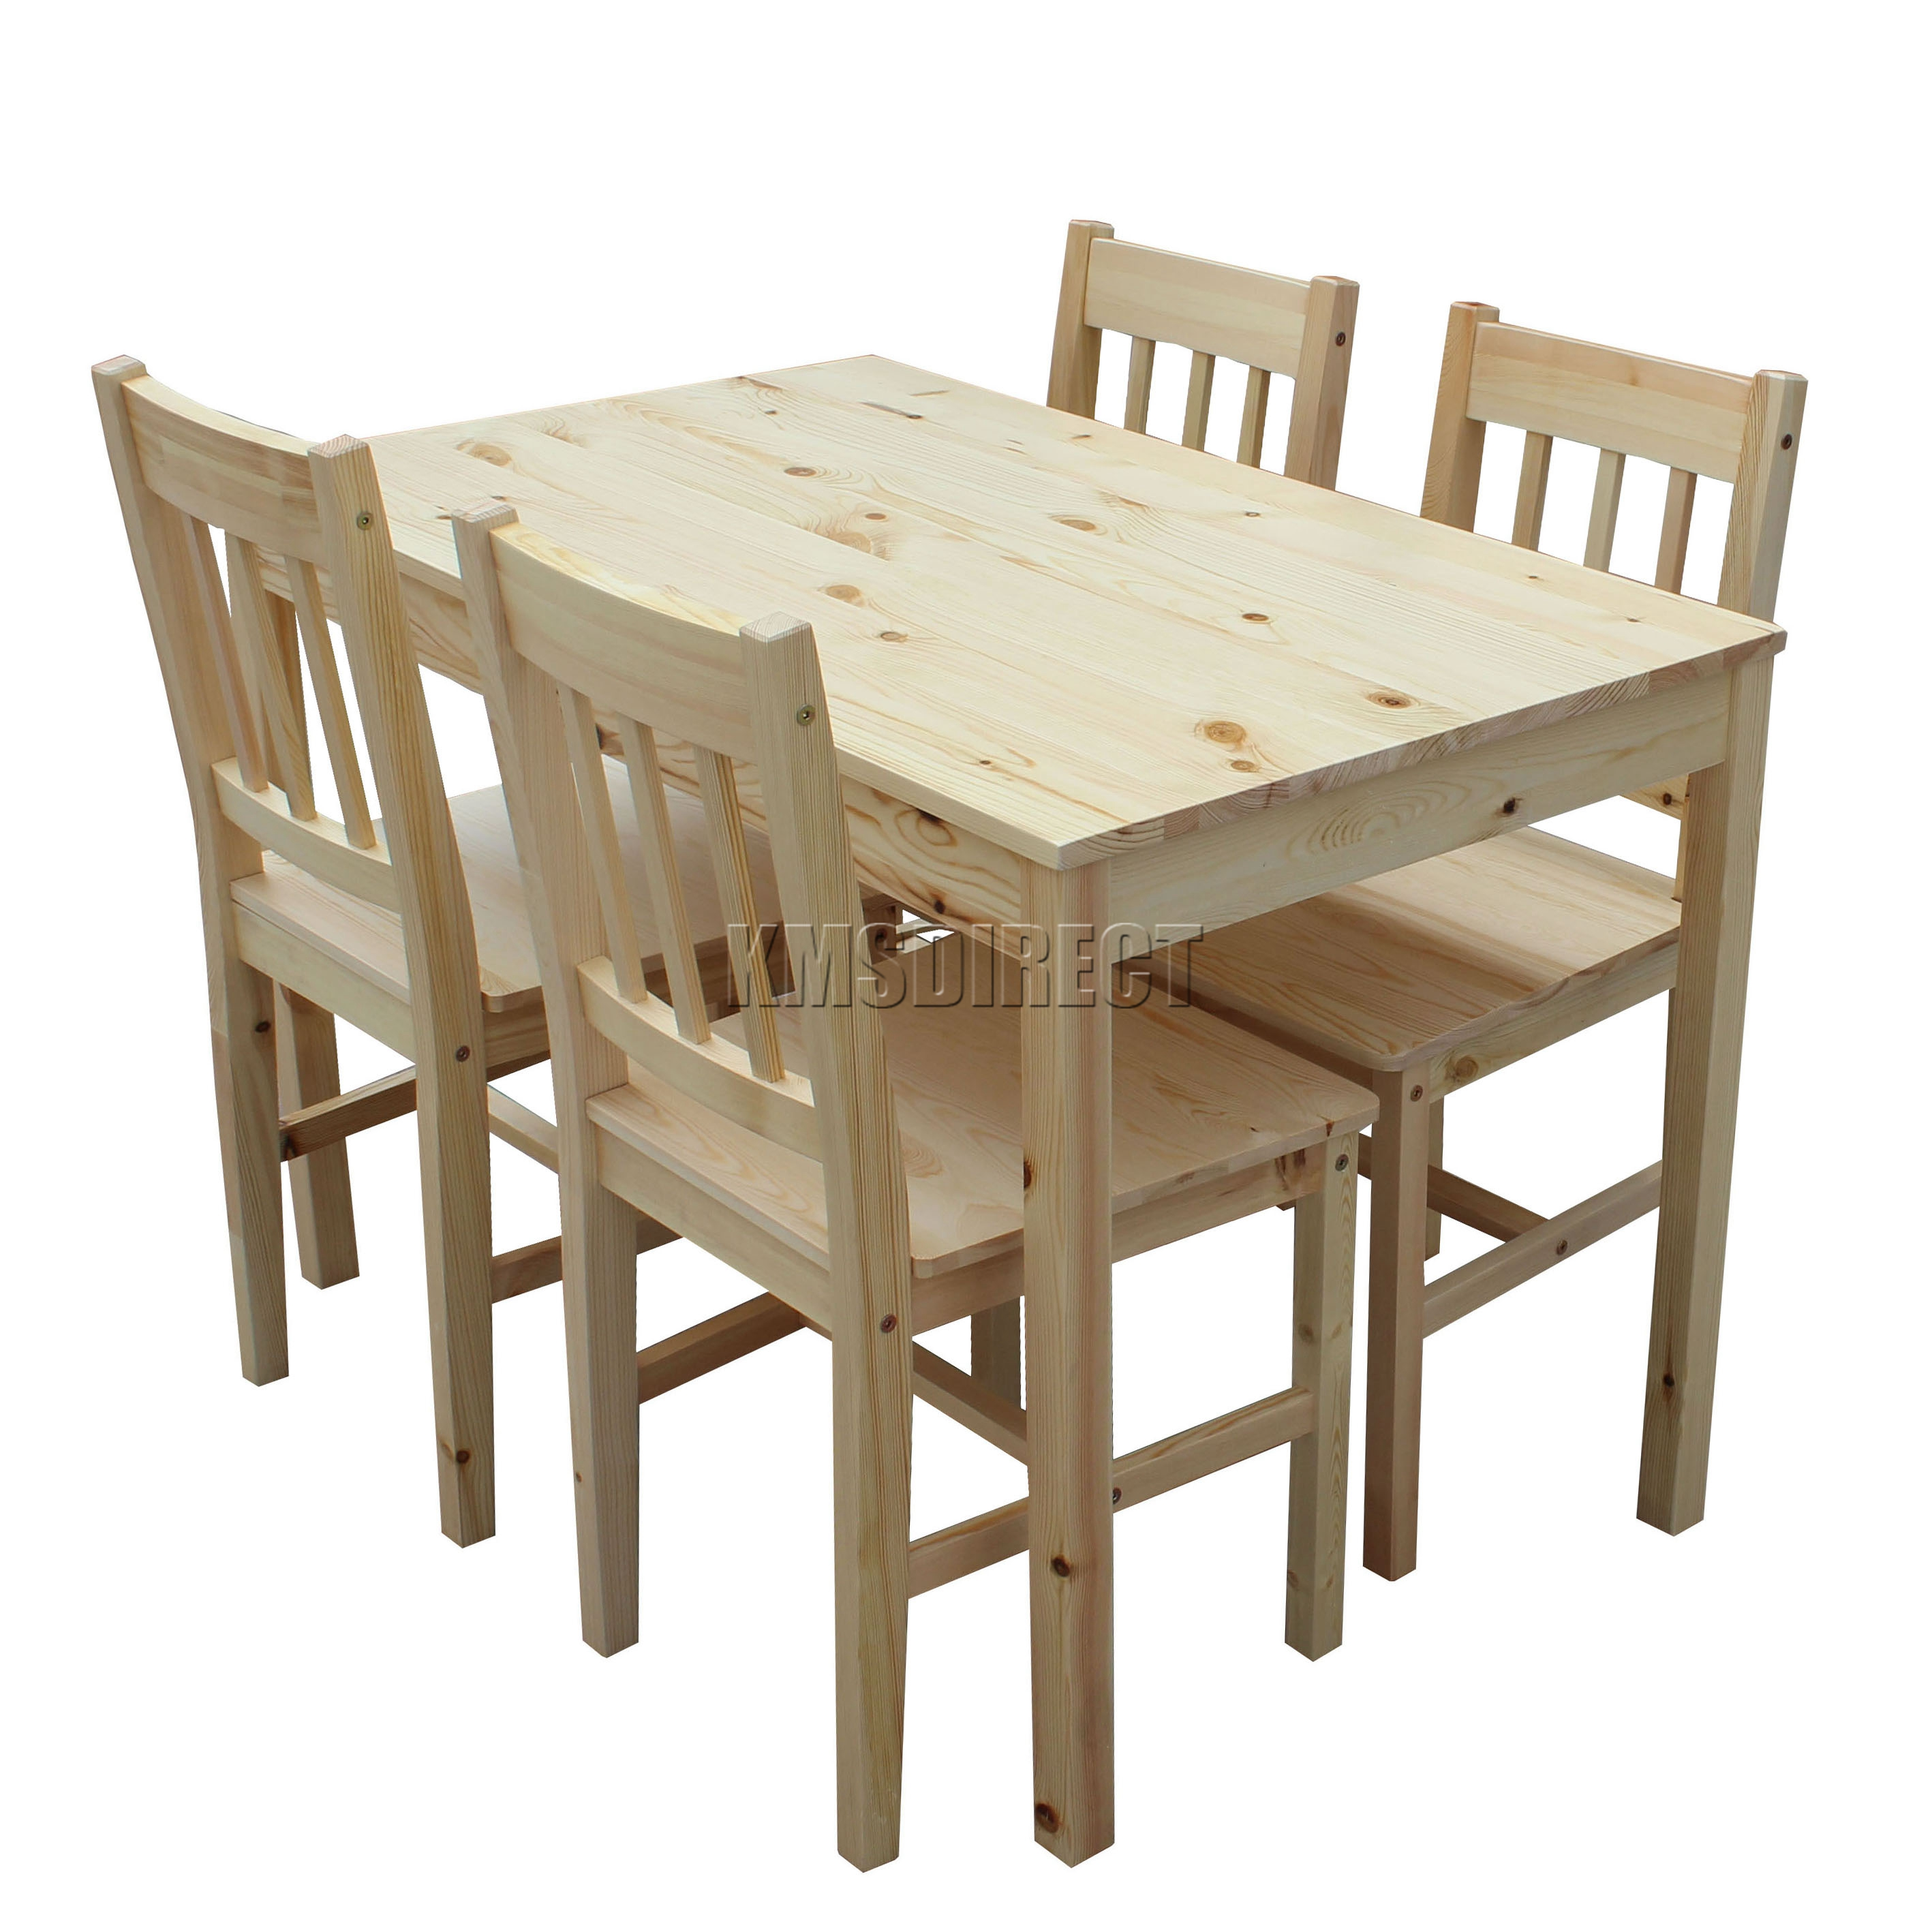 Foxhunter quality solid wooden dining table and 4 chairs for 4 kitchen table chairs